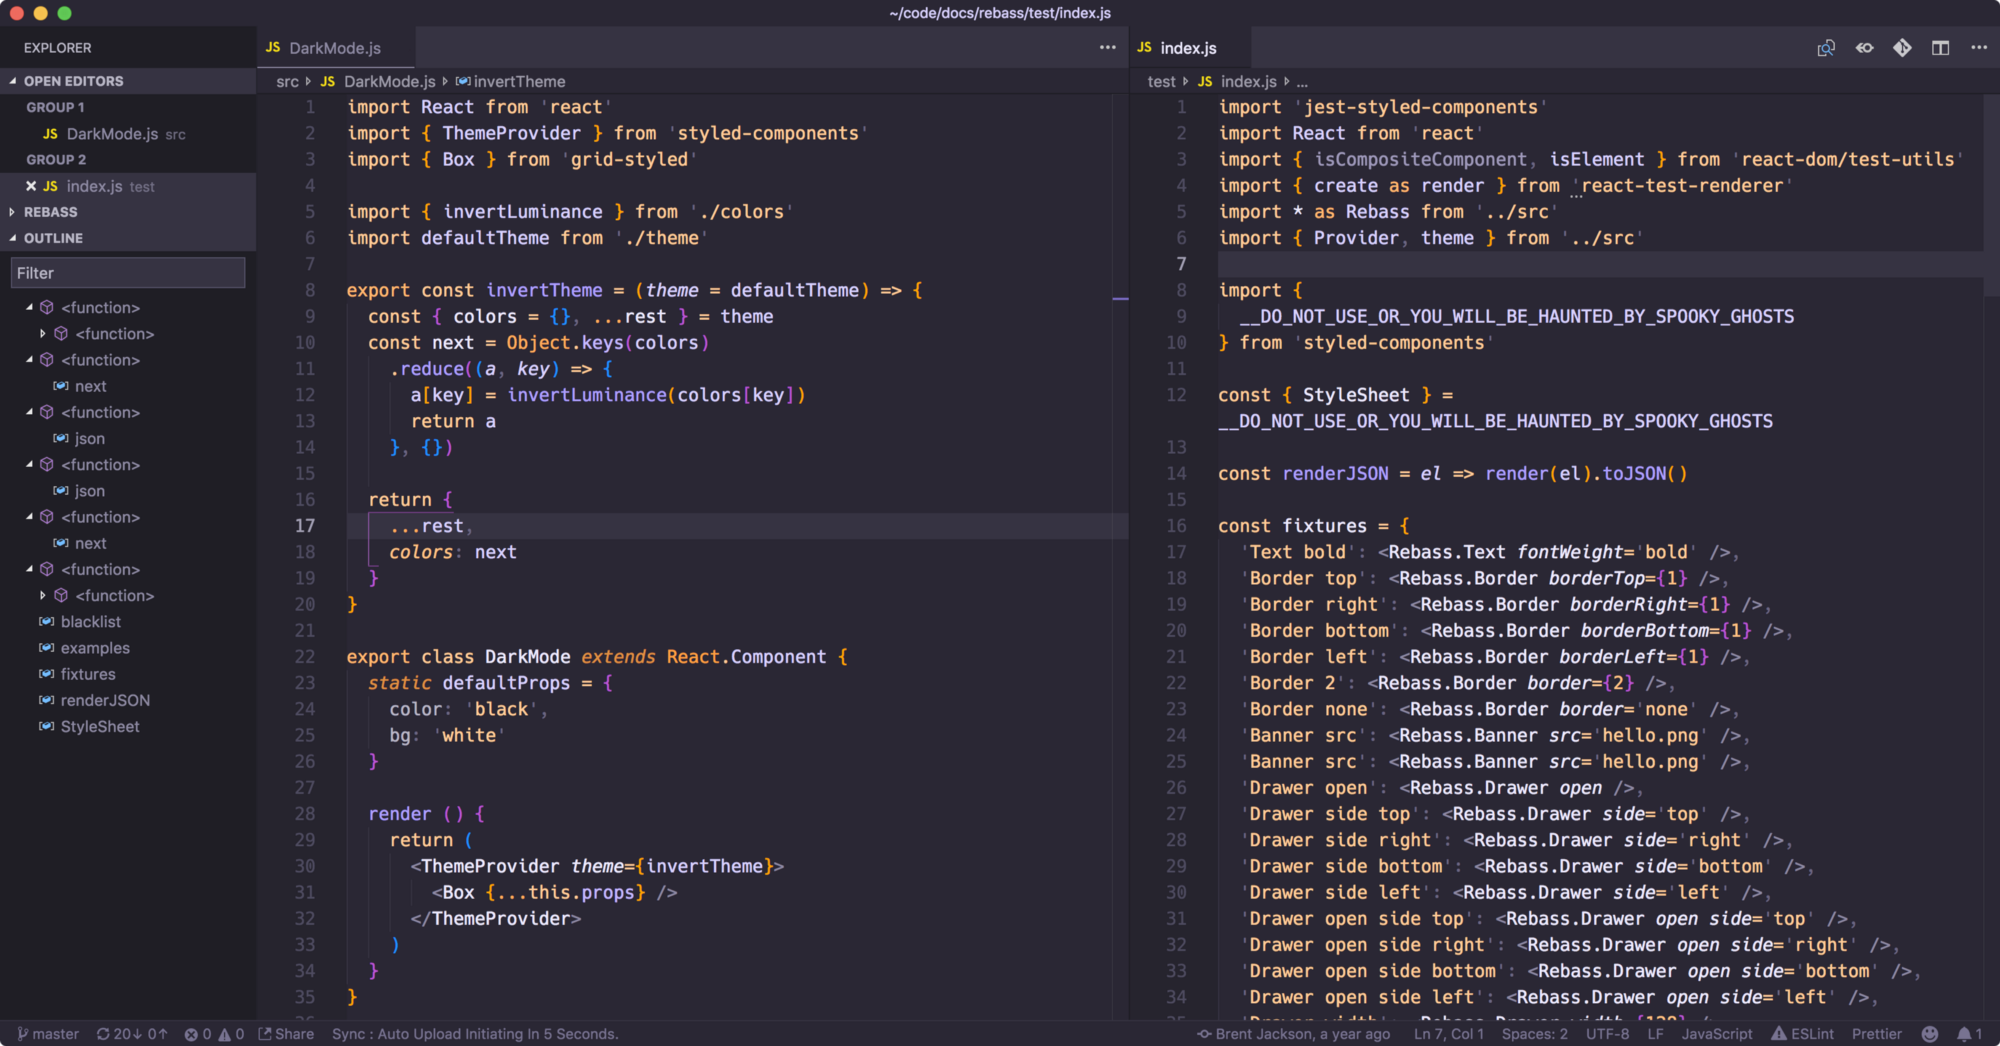 The Best Visual Studio Code Dark and Light Themes (Updated August 2019)